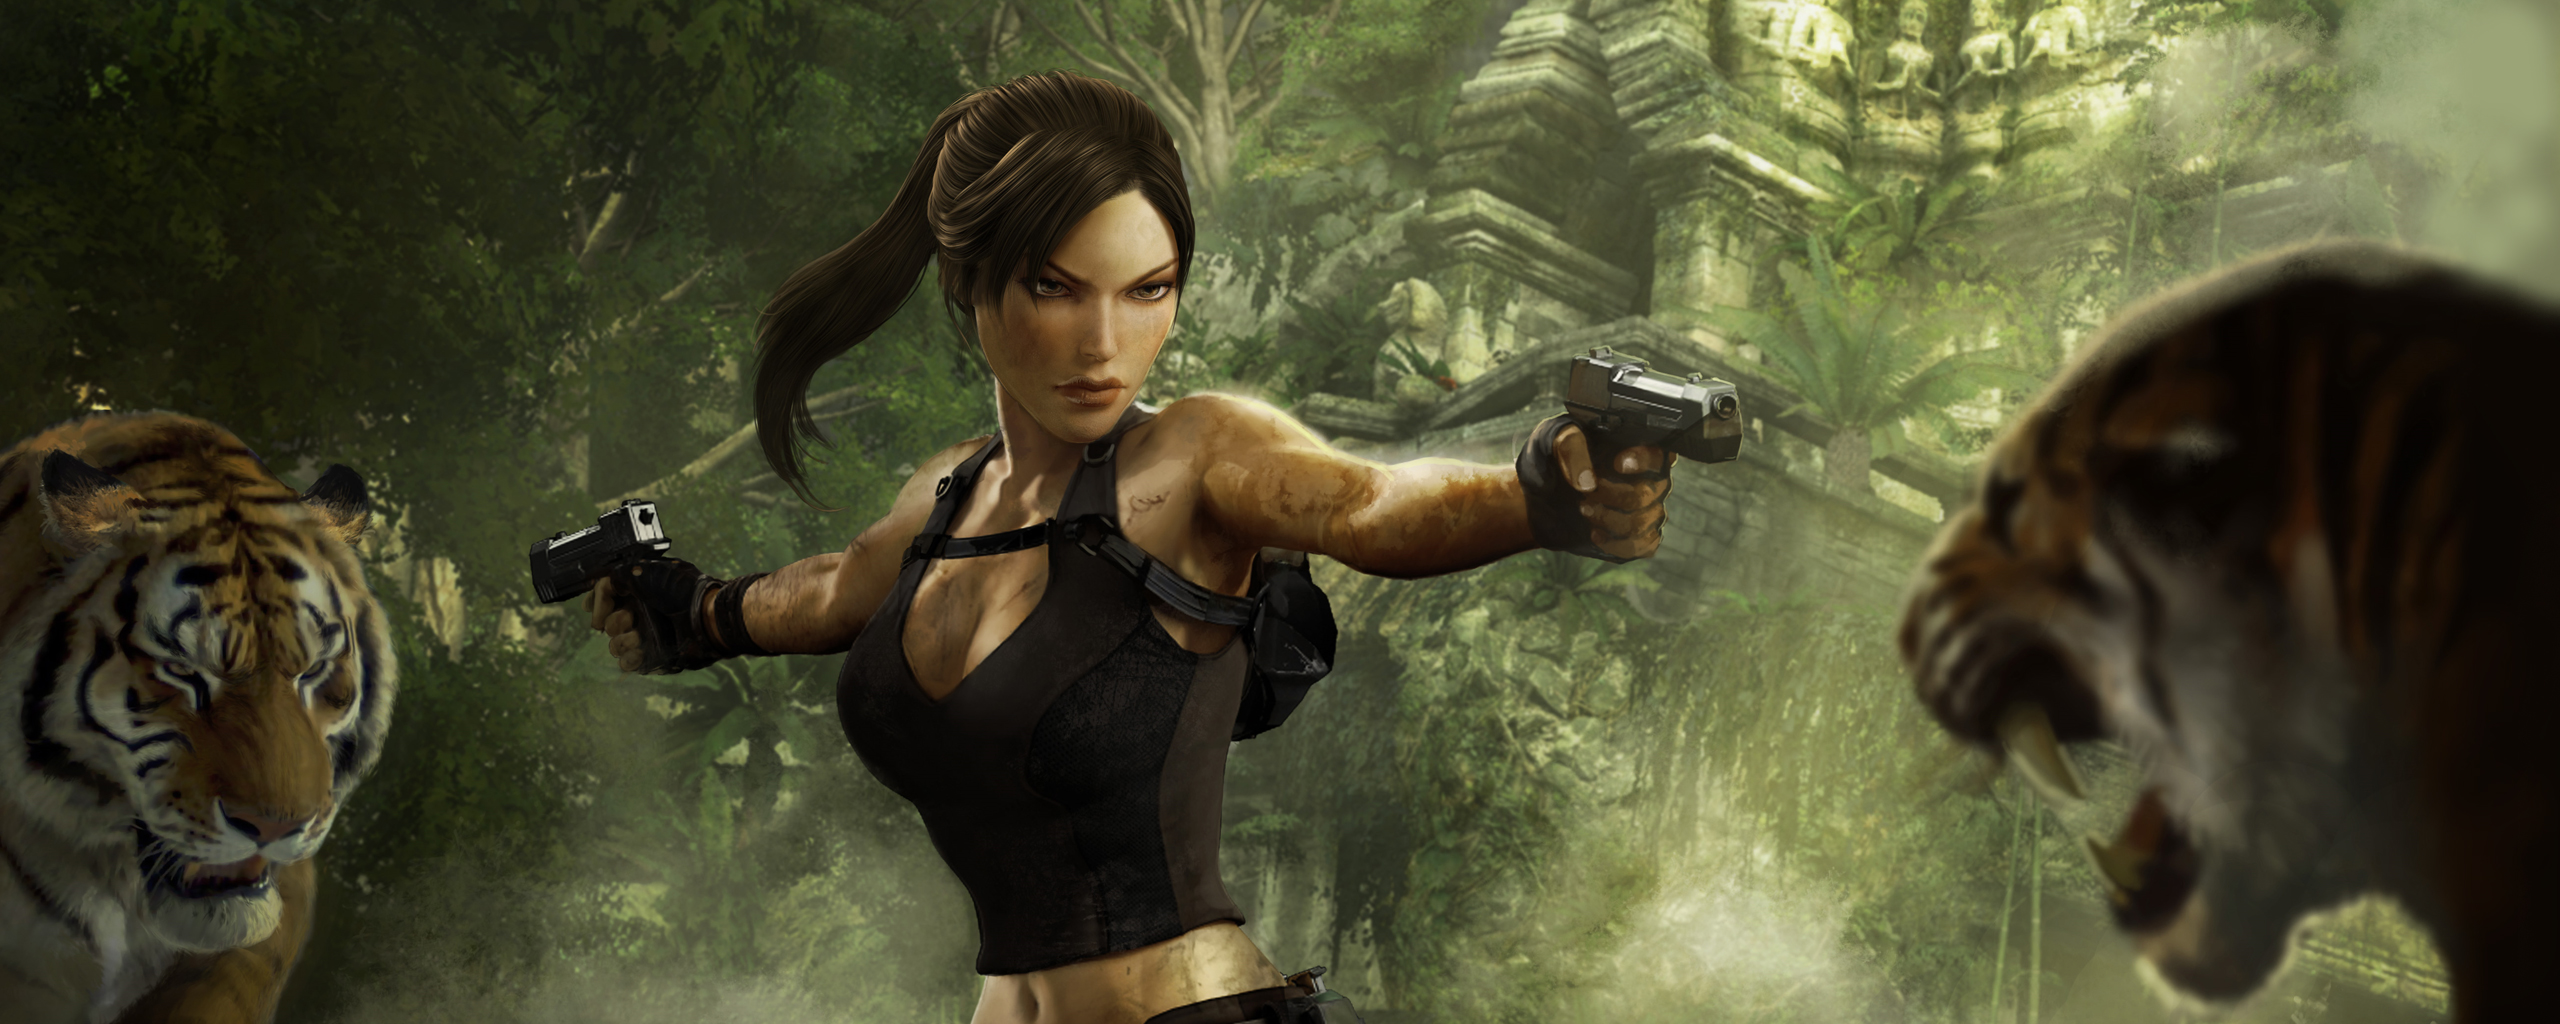 Gra Dual Screen 2560x1024 Tomb Raider 002